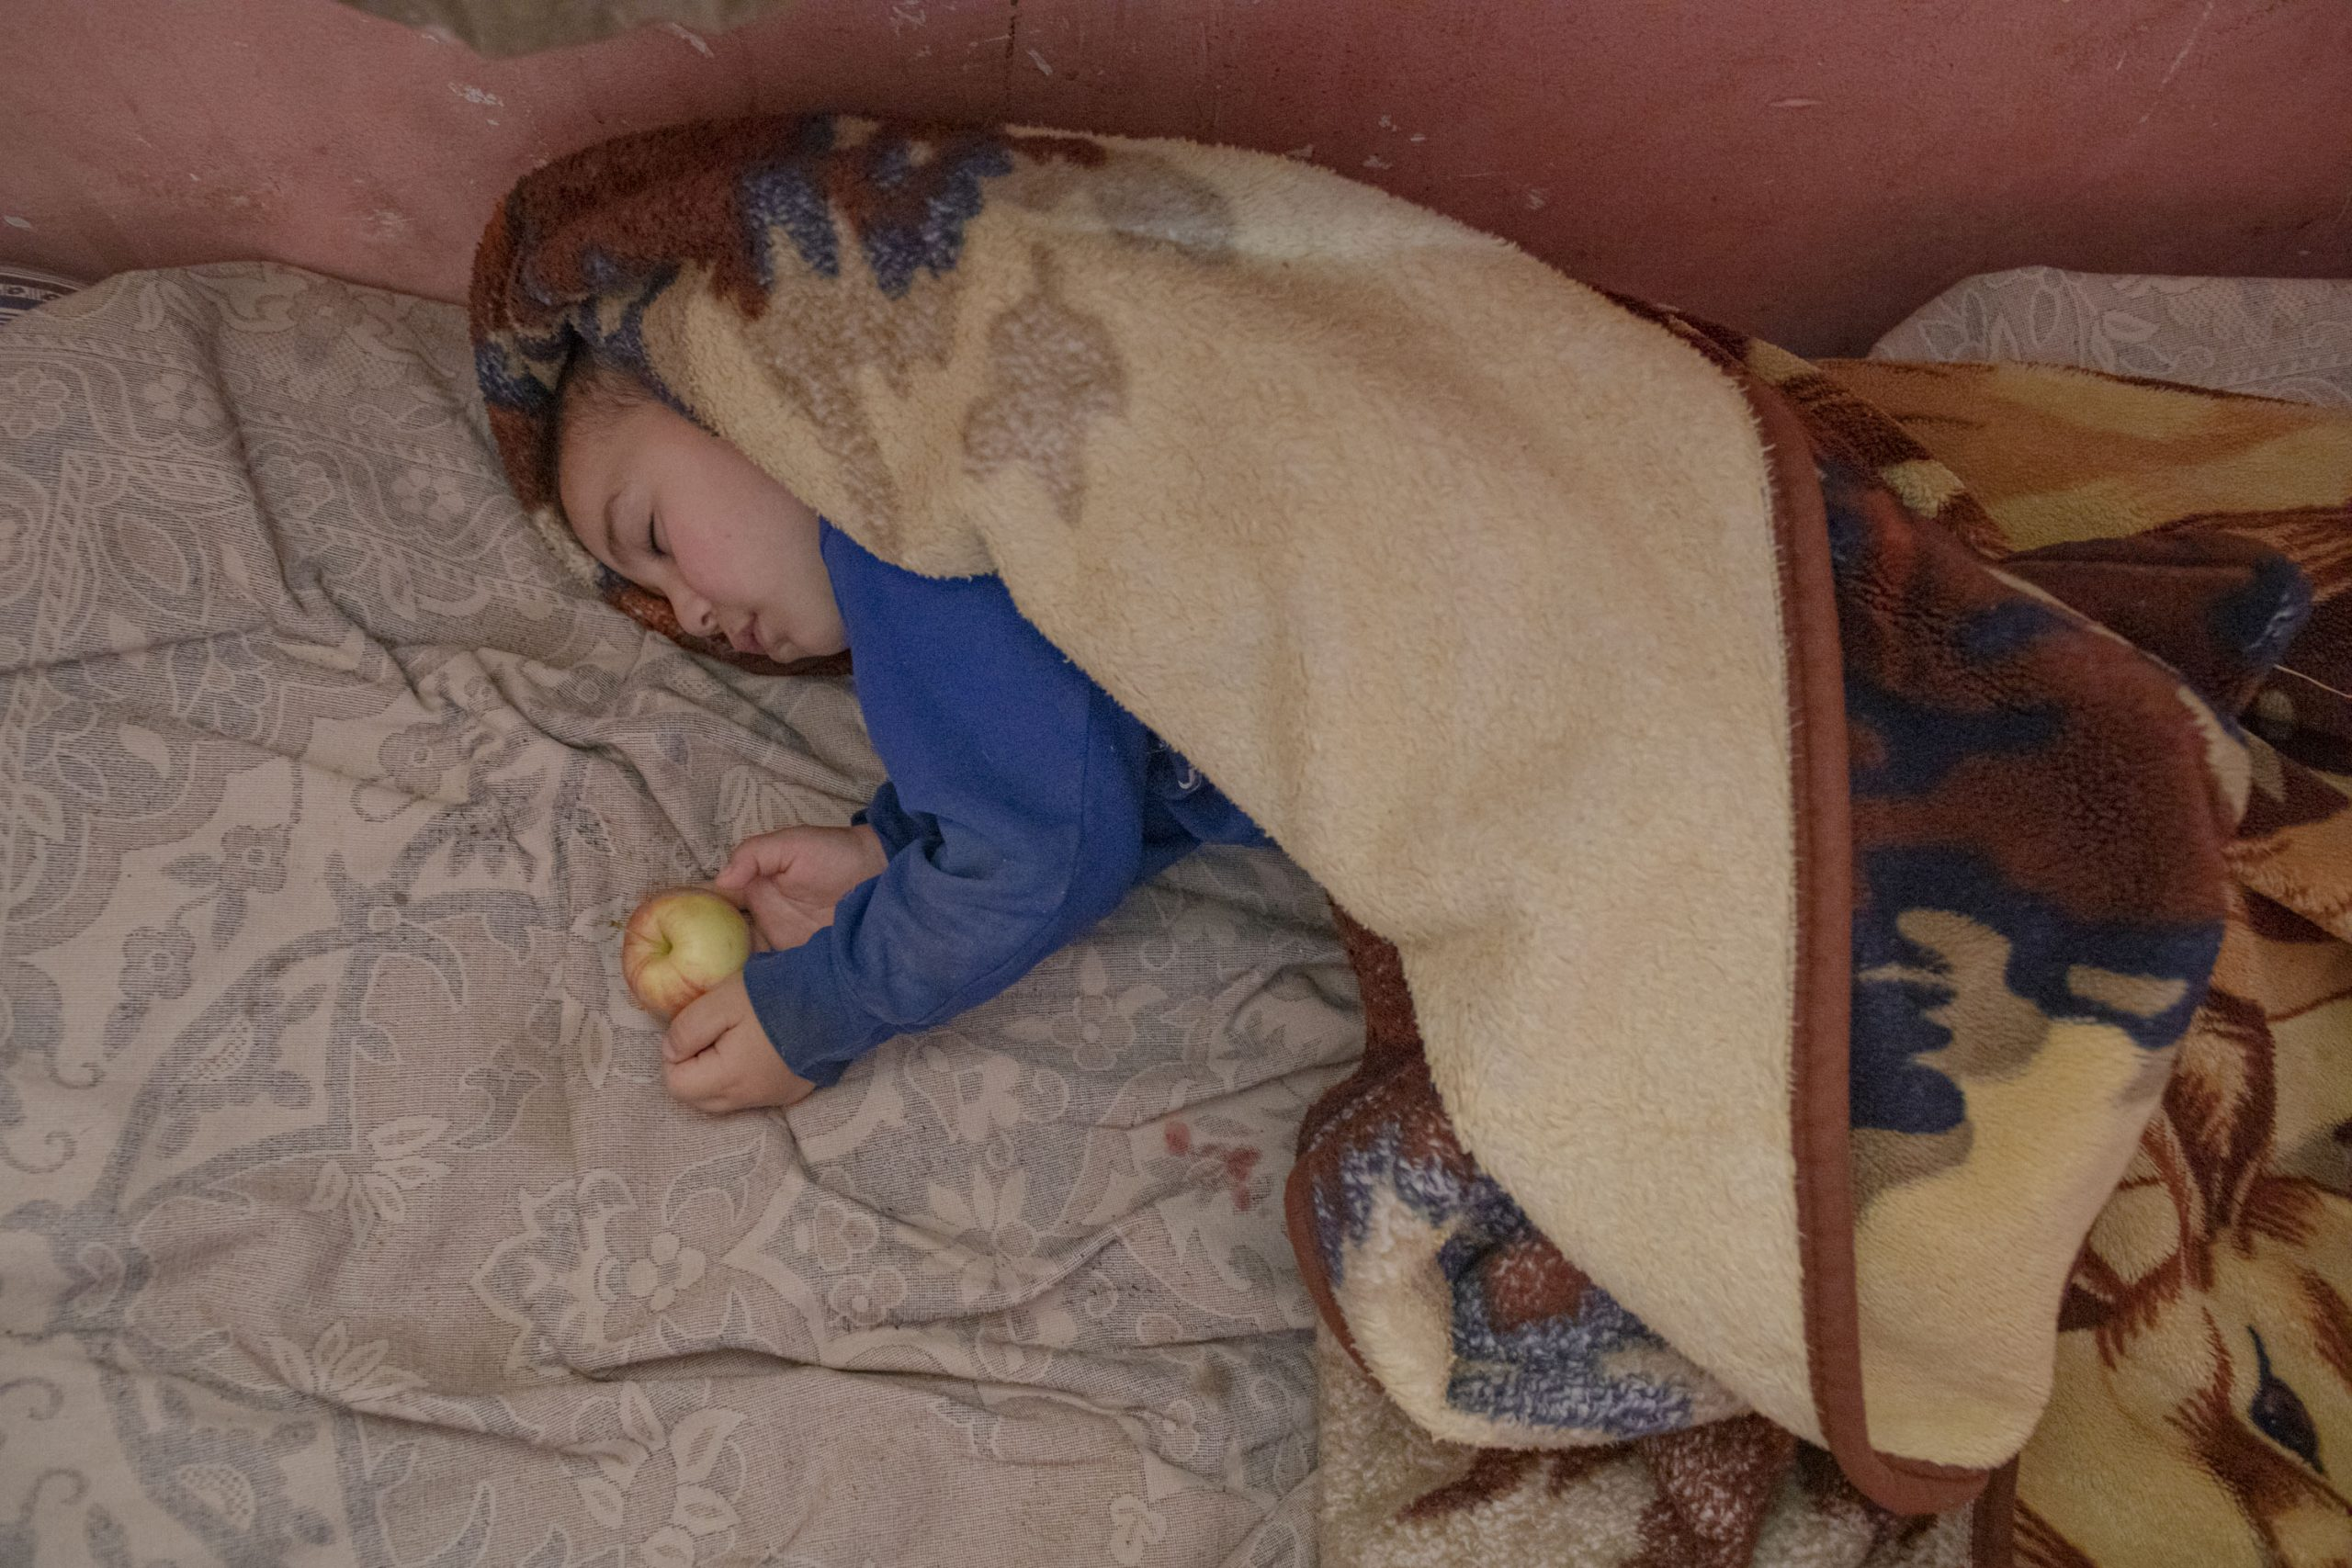 As explosions are heard in Stepanakert and its surrounding area, Movses Babayan, 3, sleeps at his home in Stepanakert, Nagorno-Karabakh, on October 2, 2020. The family has no bomb shelter, they hide under stairs on the first floor, where the child is sleeping.